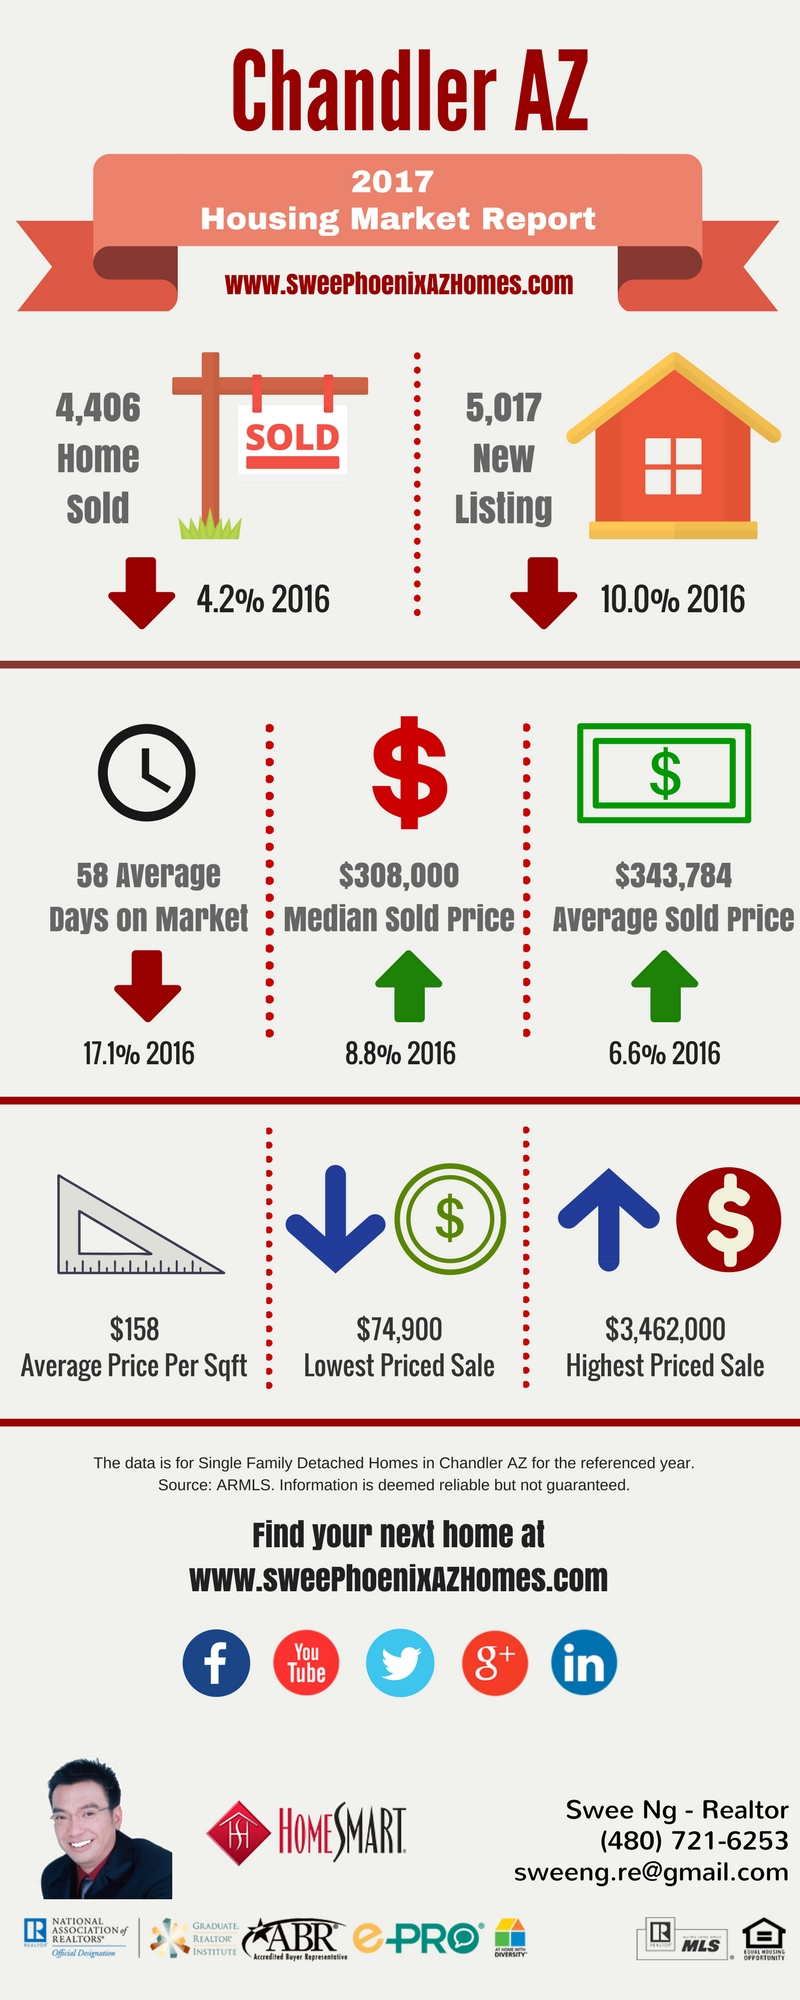 2017 Chandler AZ Housing Market Update by Swee Ng, House Value and Real Estate Listings